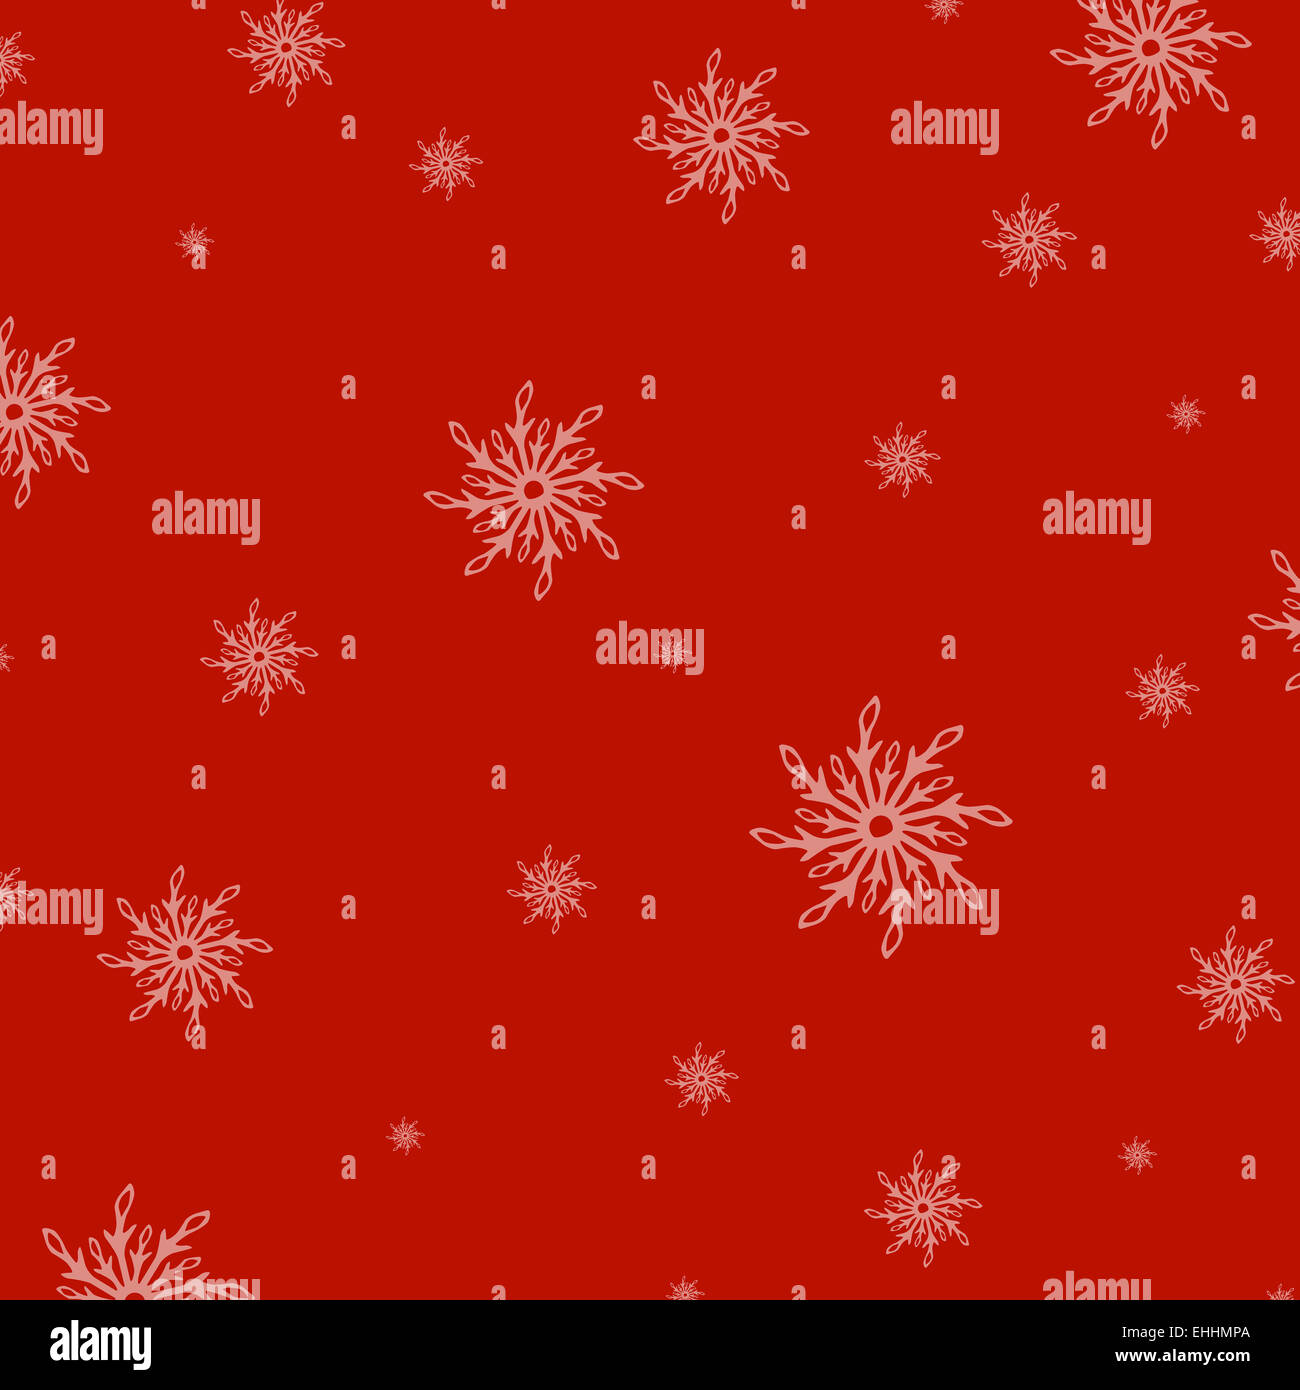 Red New Years Background With Snowflake - Stock Image